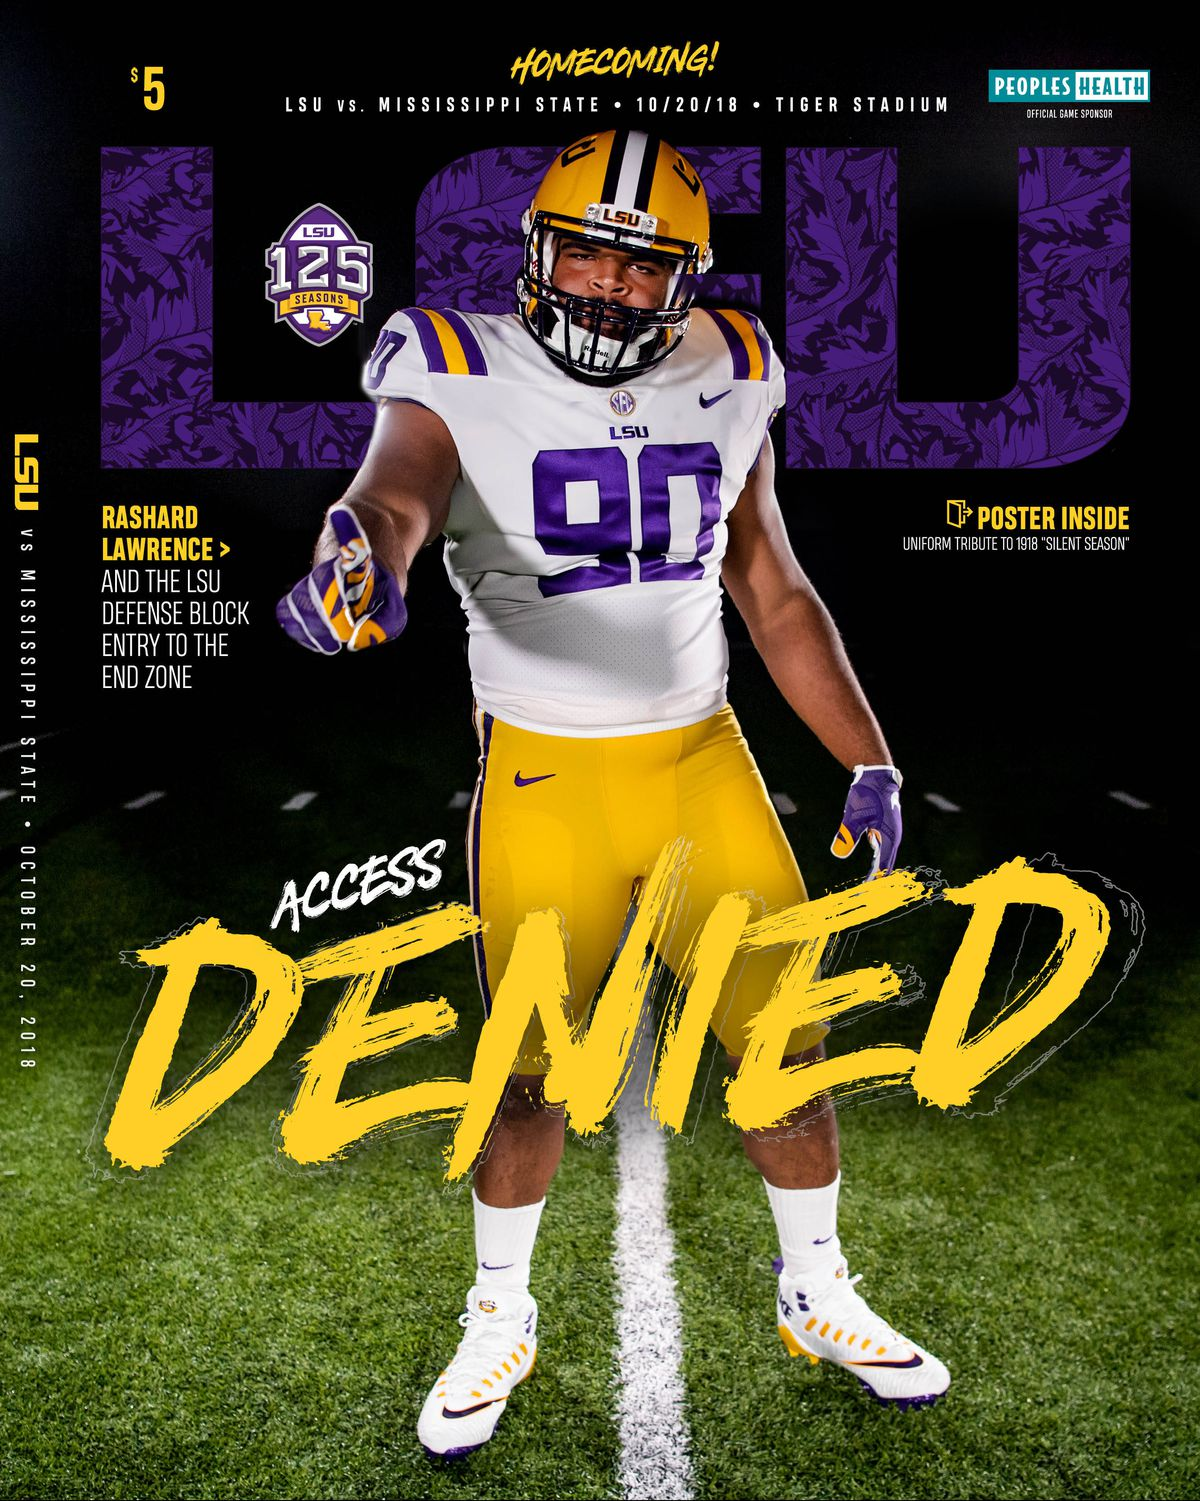 93bc39bb Mississippi St.: Times of Interest - LSUsports.net - The Official Web Site  of LSU Tigers Athletics LSU vs. Mississippi St.: Times of Interest